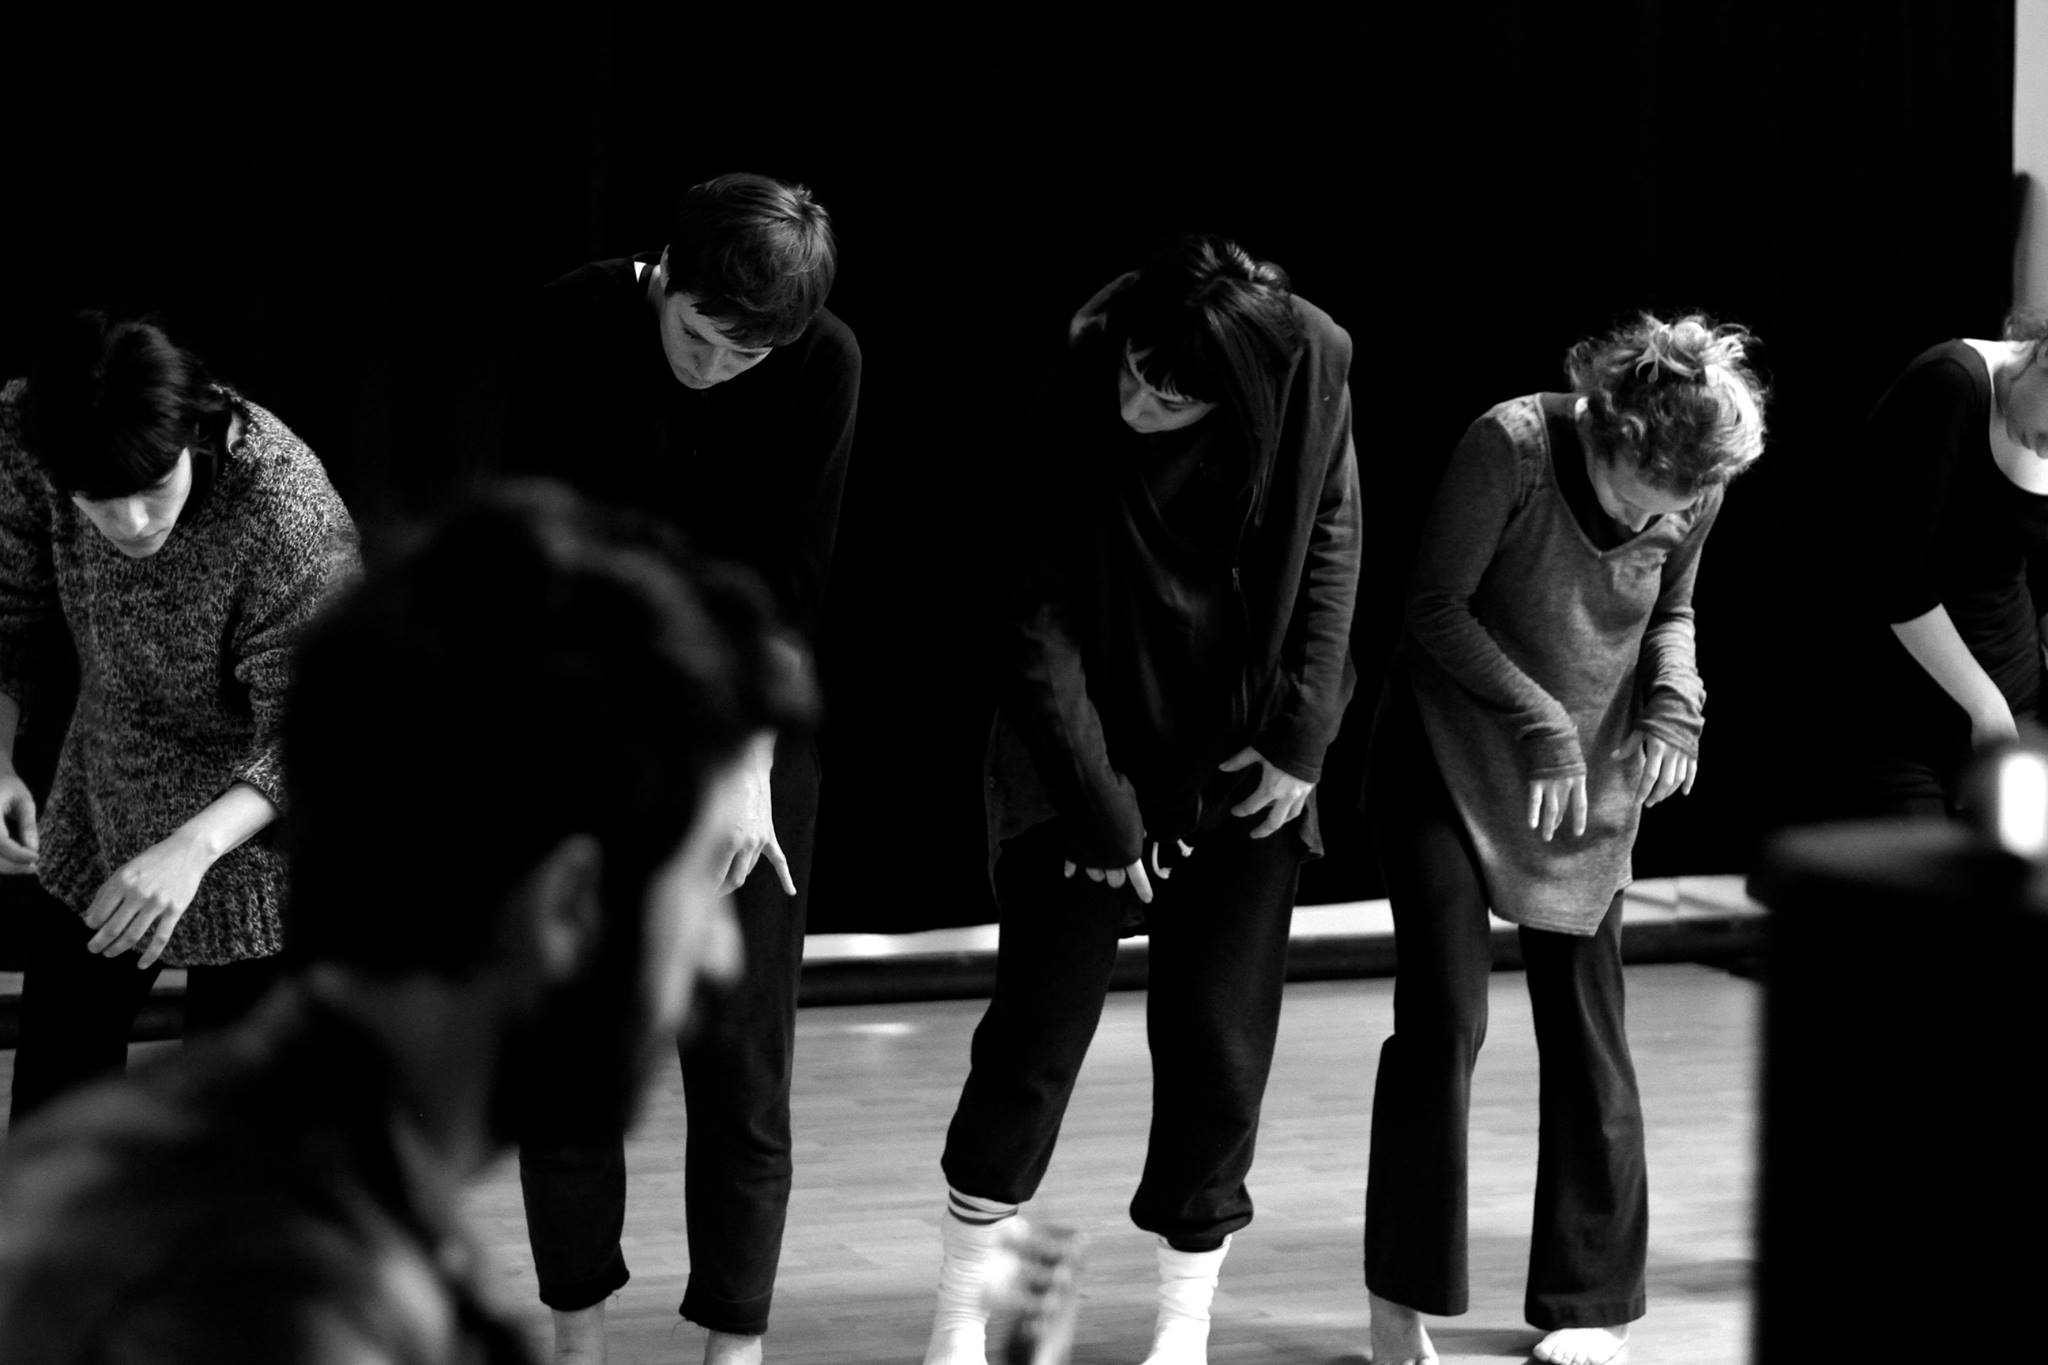 Out of order III İstanbul (Turkey) dance workshop with Michiyasu Furutani